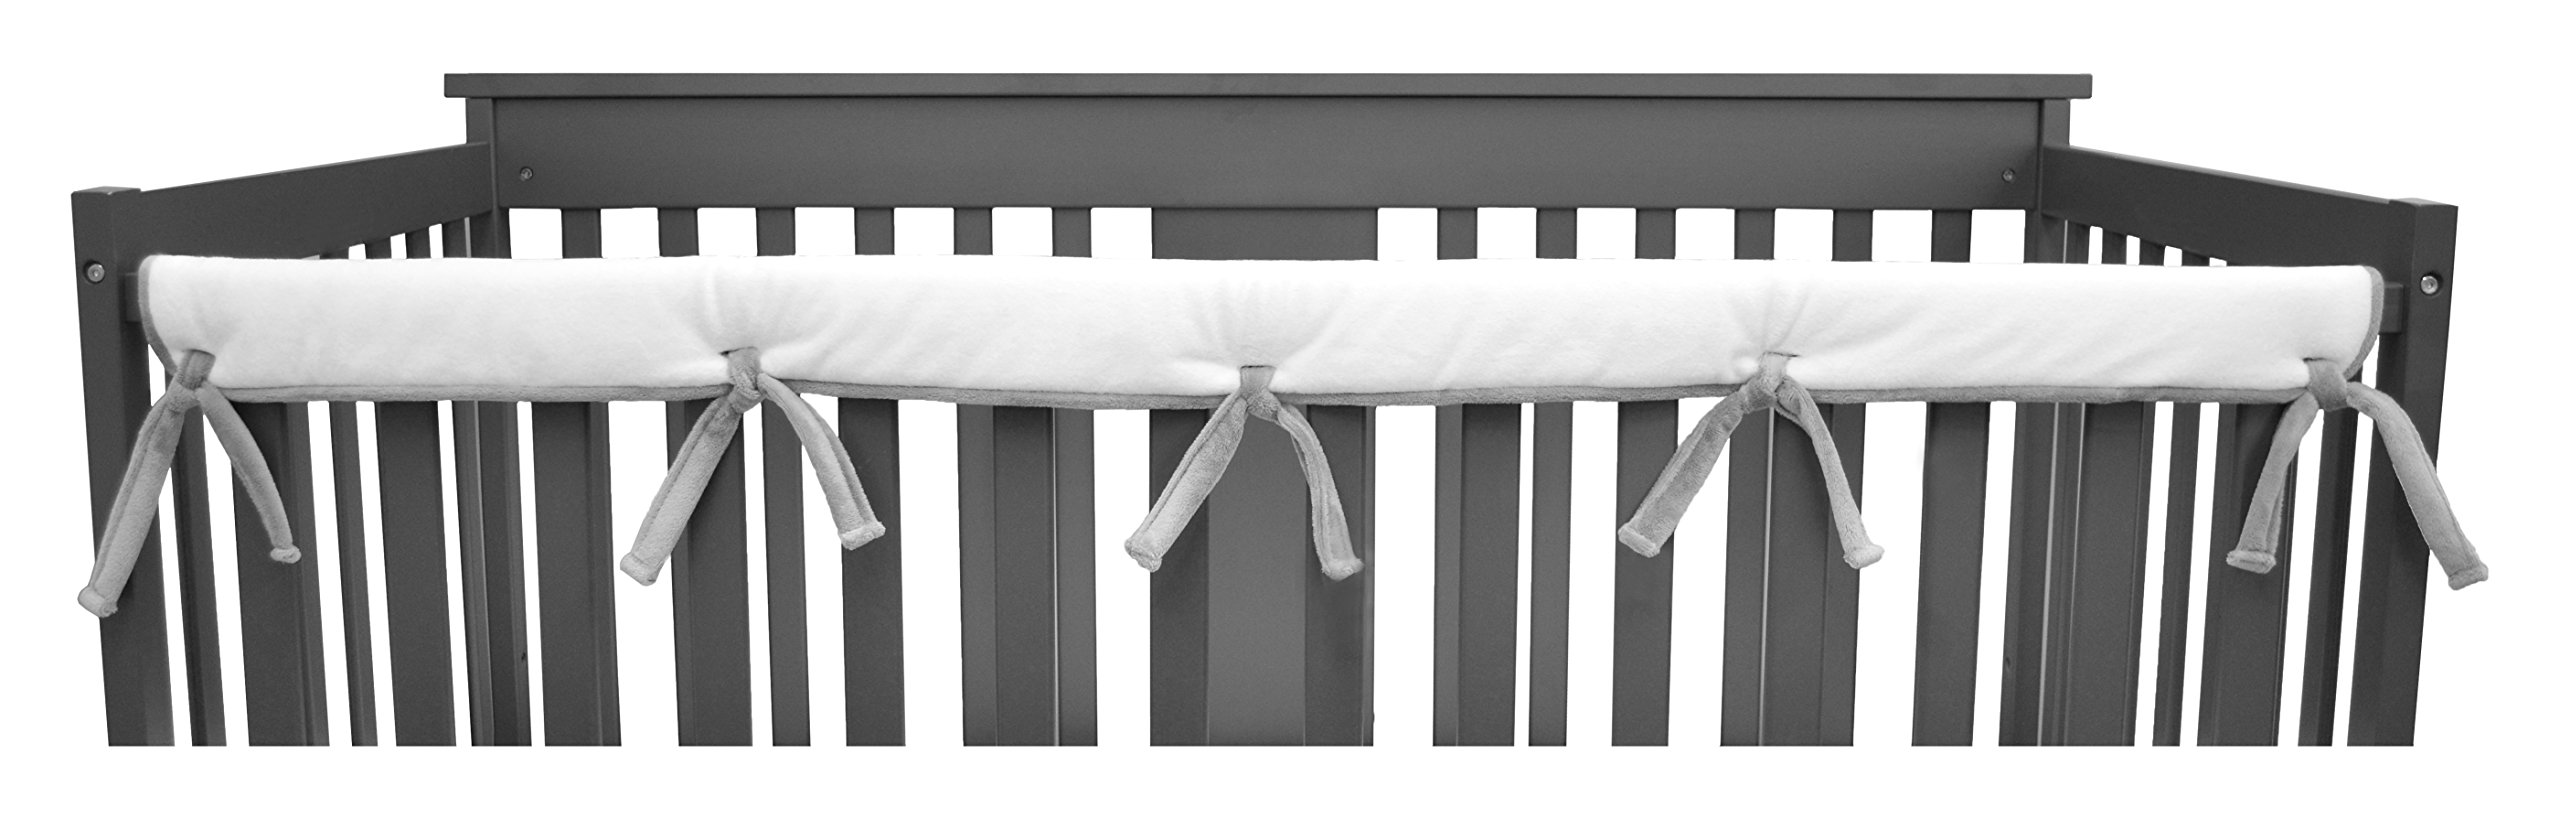 American Baby Company Heavenly Soft Narrow Reversible Crib Cover for Long Rail, Gray/White, for Crib Rails Measuring up to 4'' folded